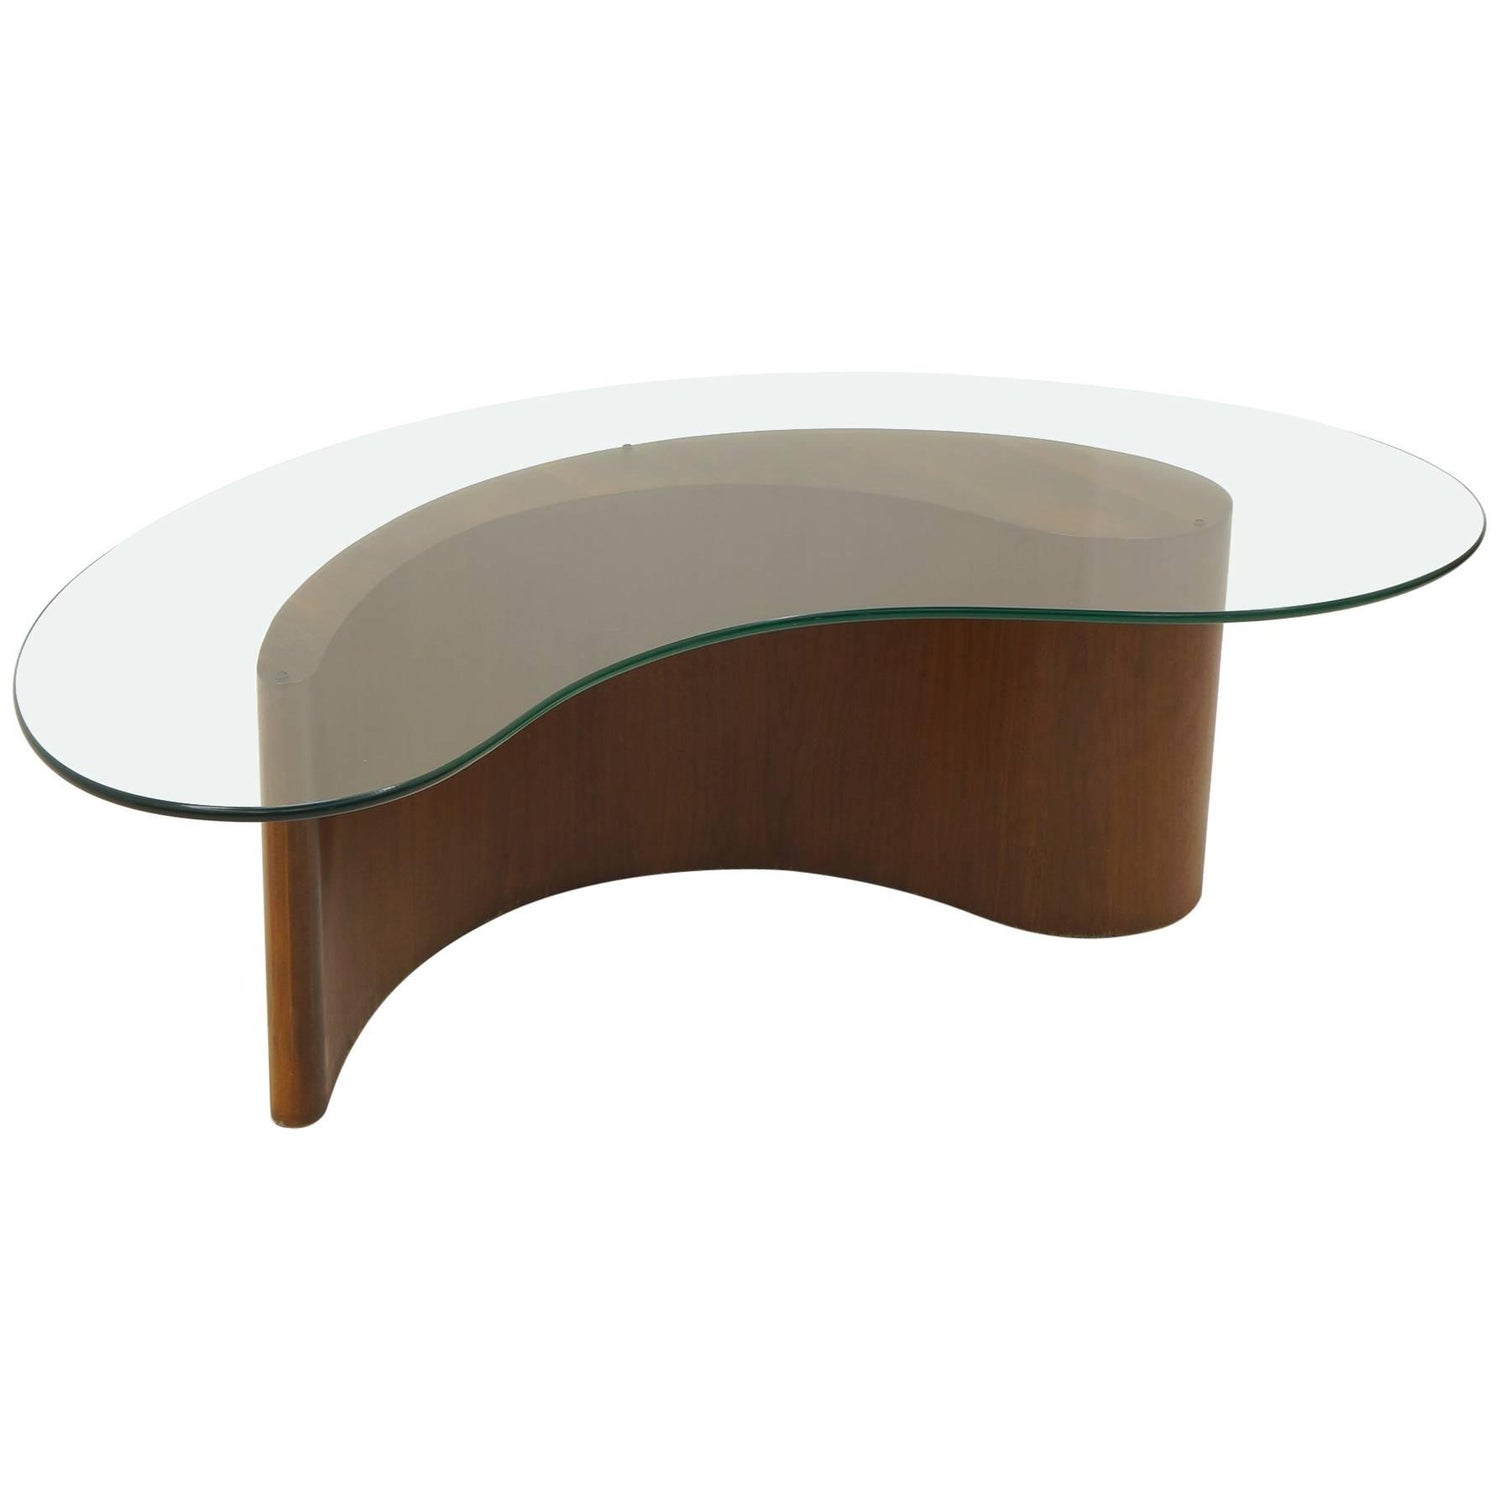 Vladimir Kagan Apostrophe ma Coffee Table Walnut and Glass